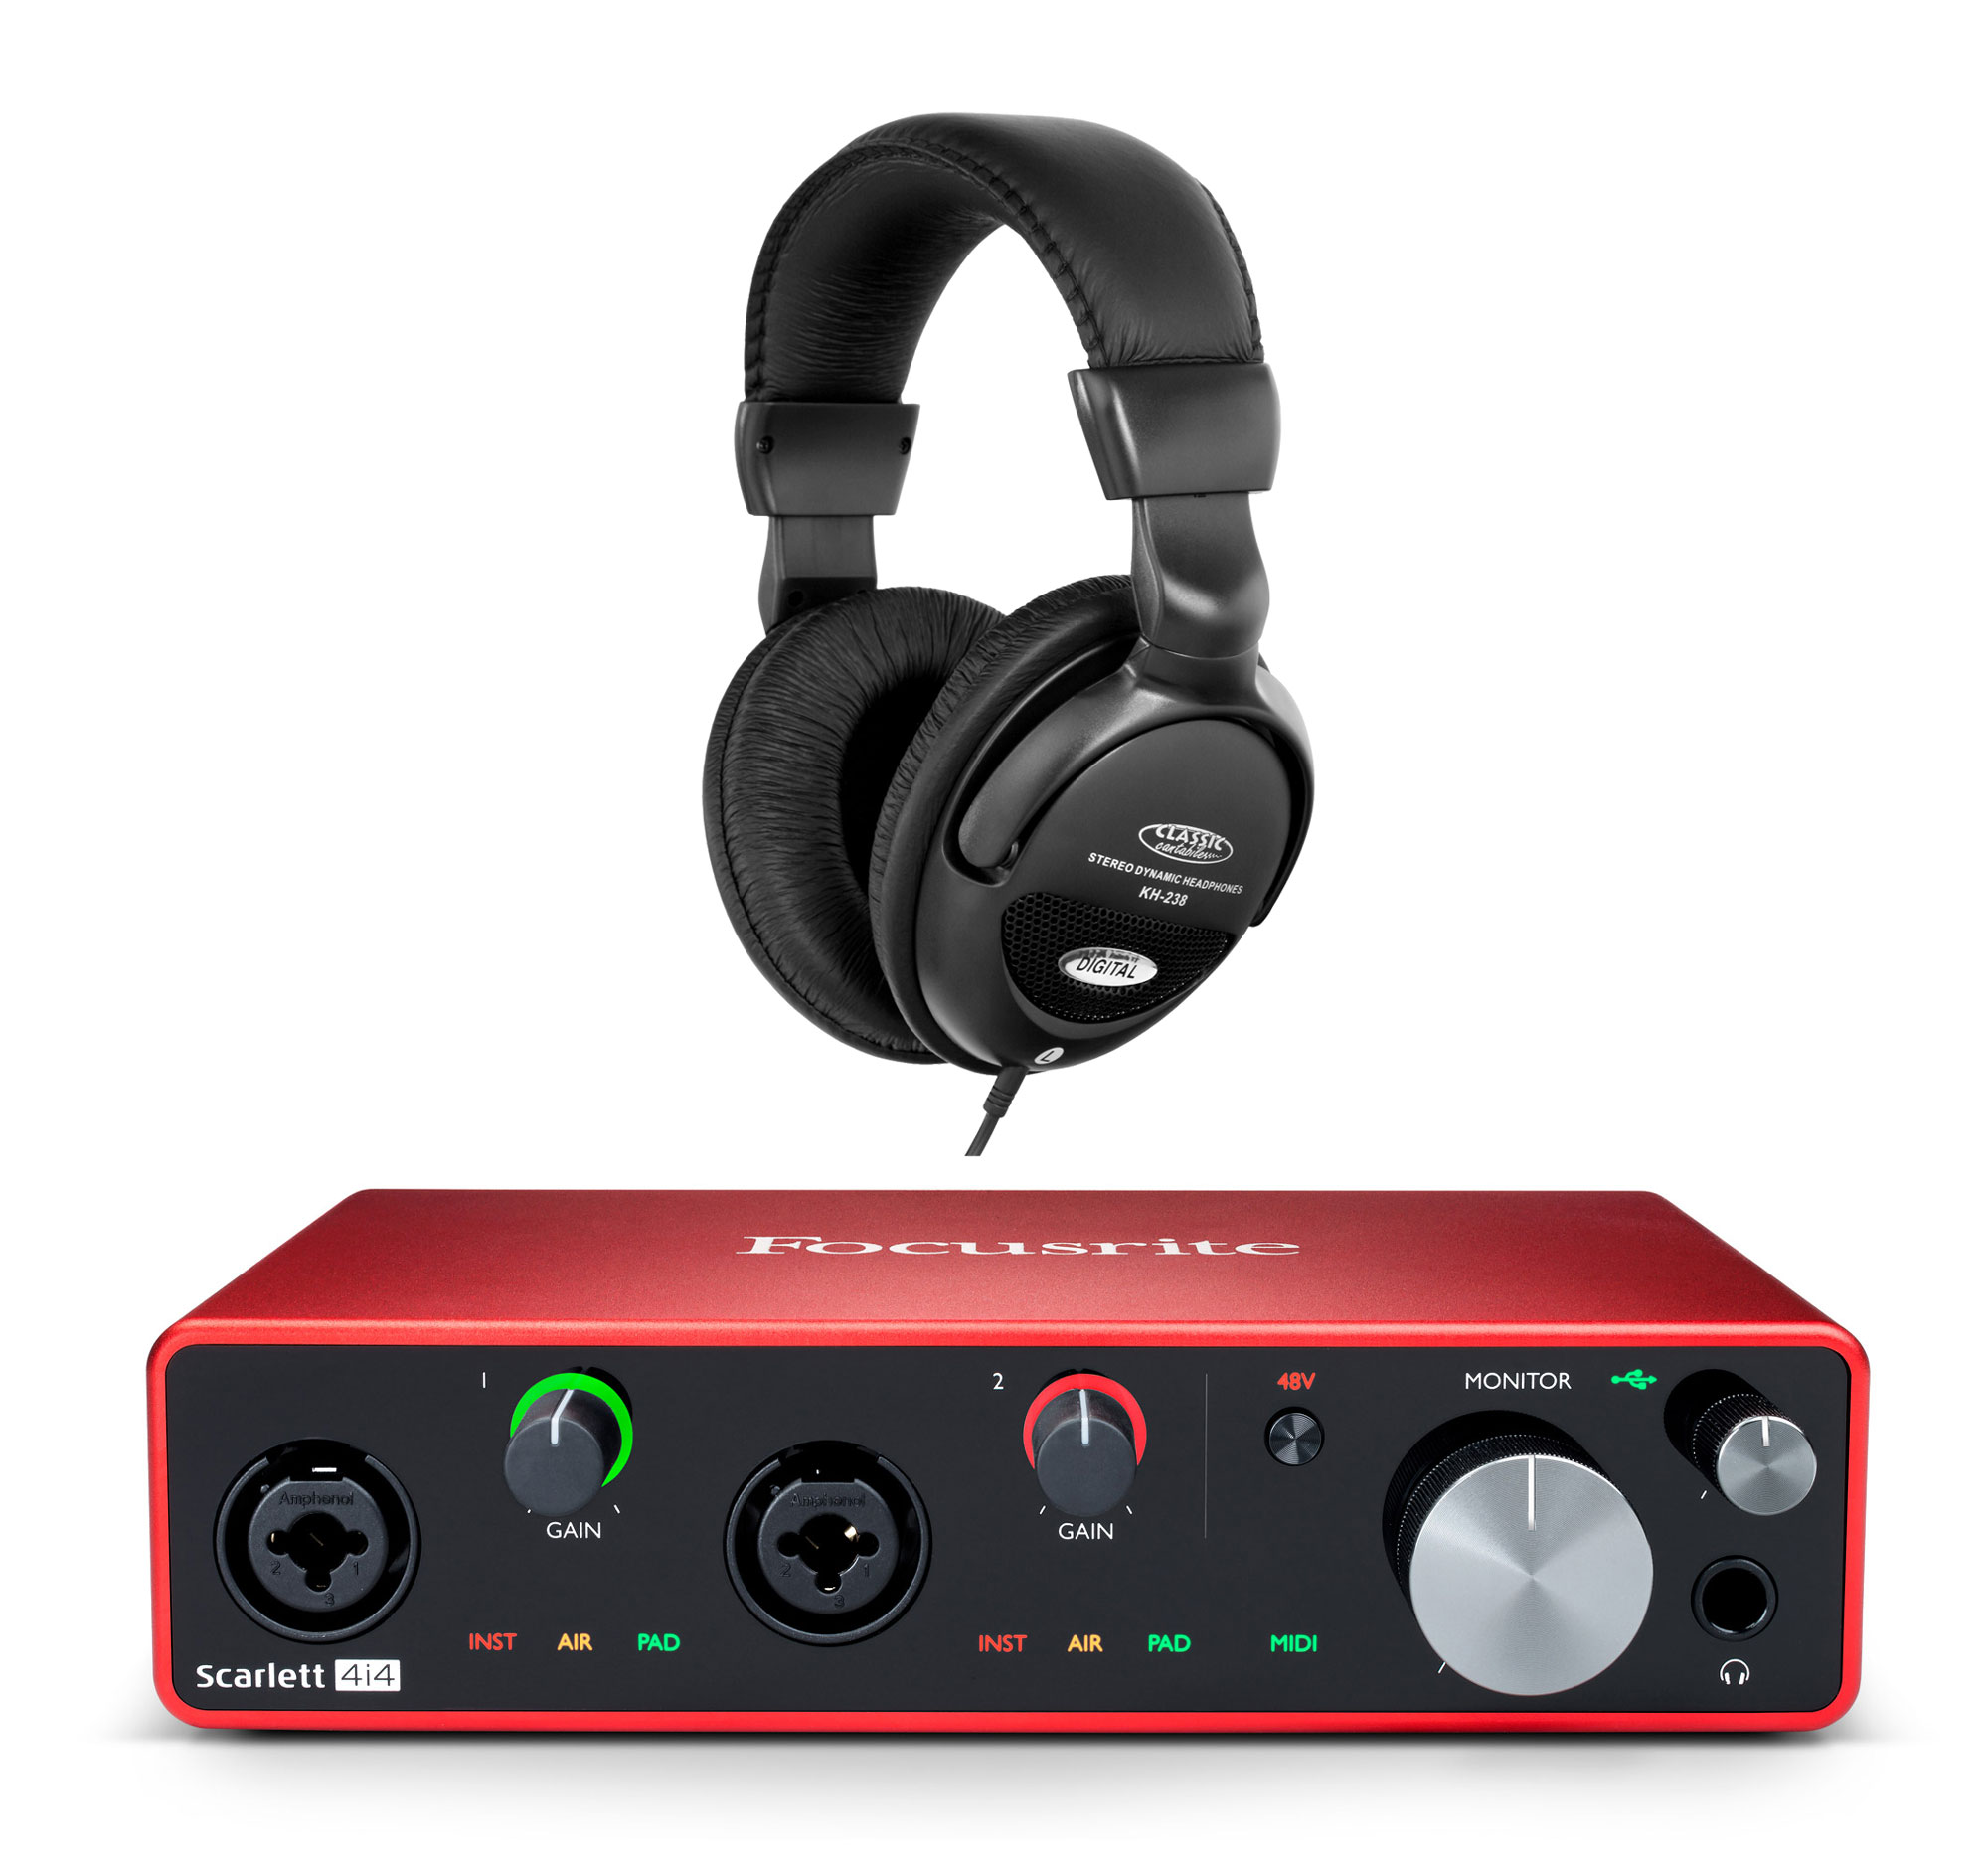 Pchardware - Focusrite Scarlett 4i4 USB Audio Interface Set - Onlineshop Musikhaus Kirstein